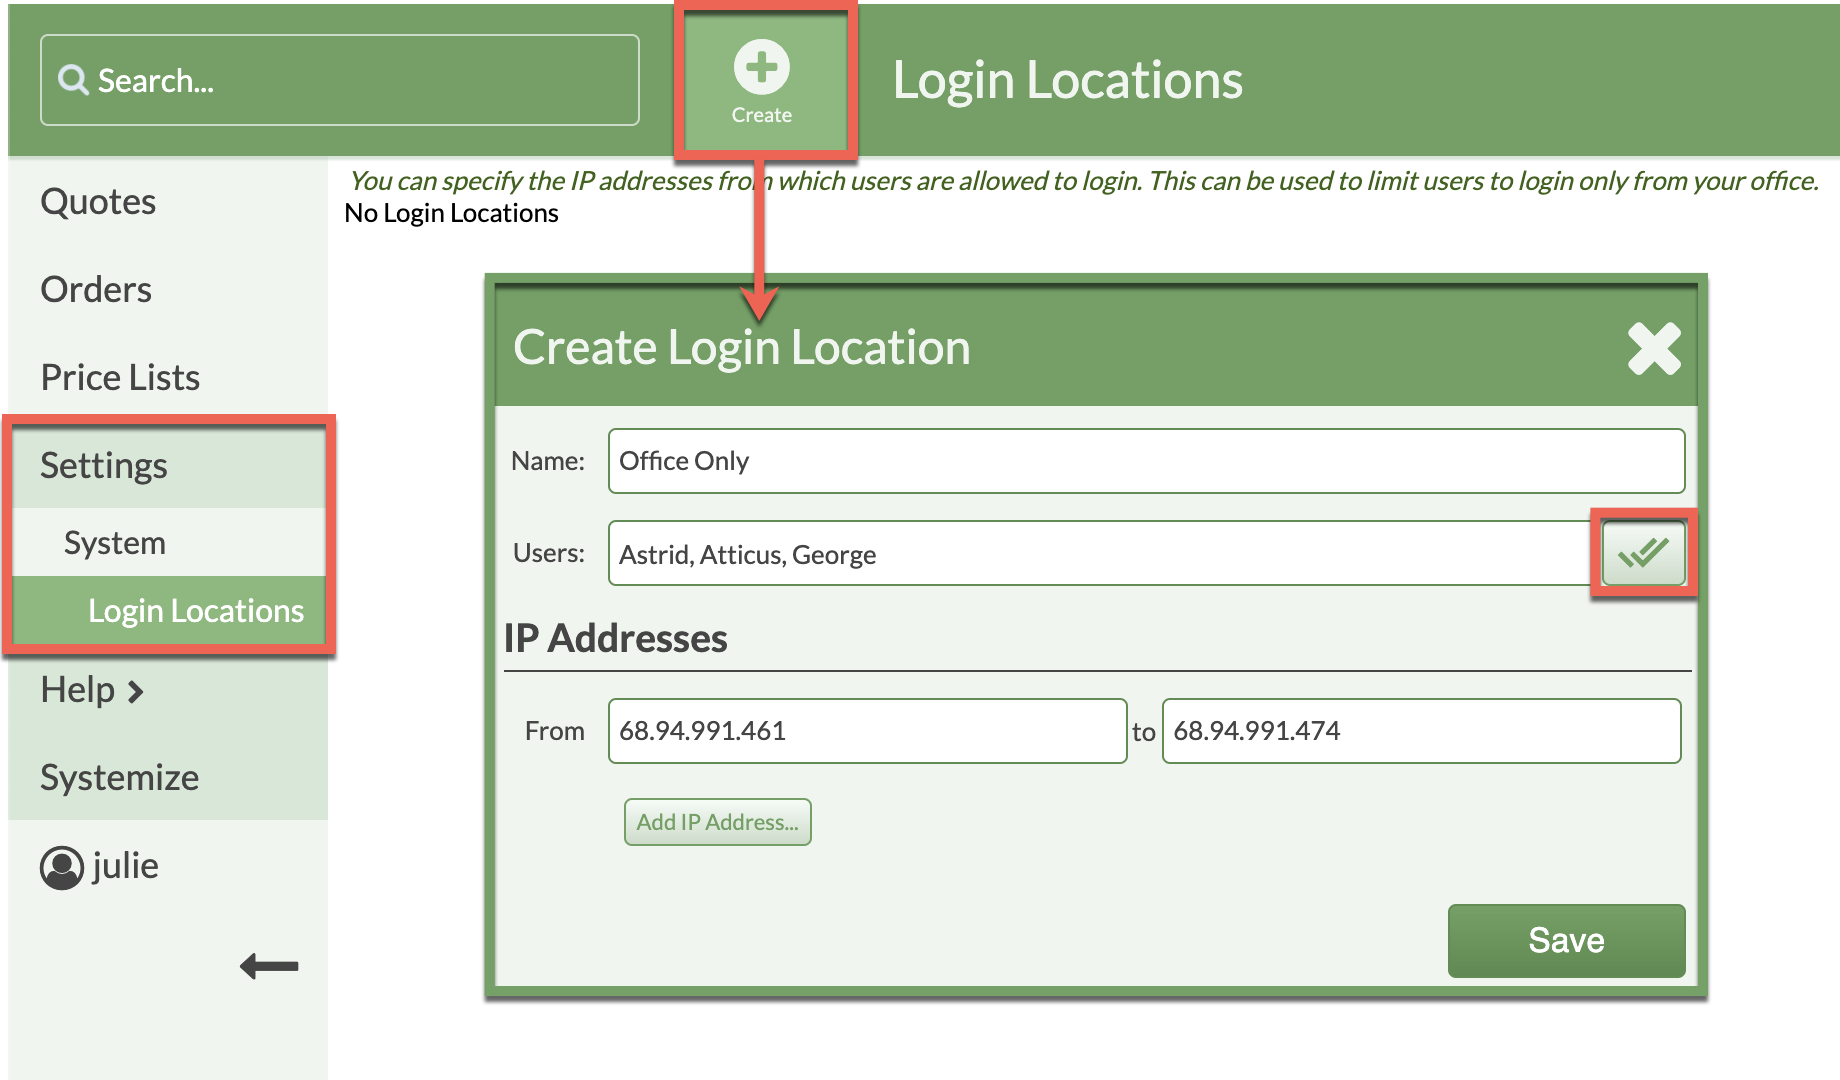 create login locations to restrict access